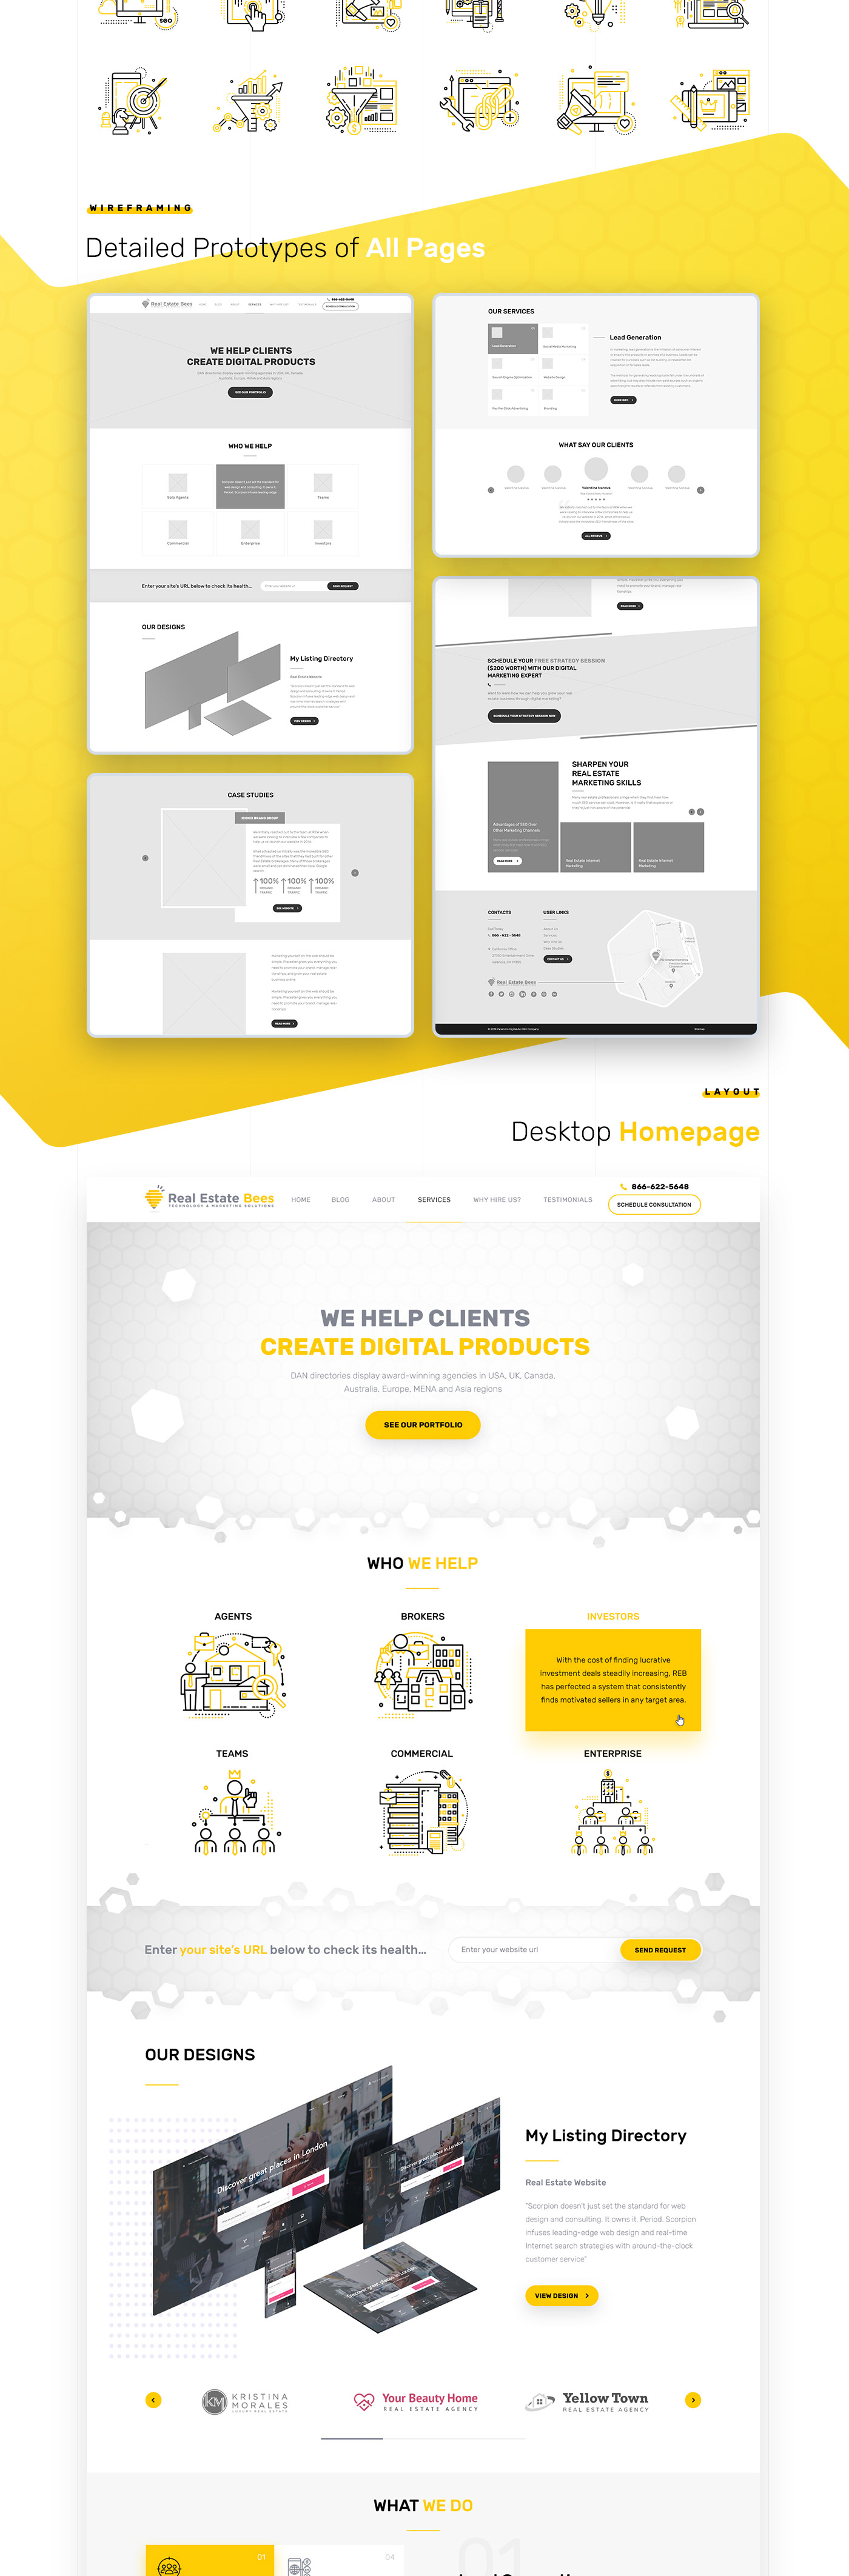 Real Estate Bees — Web Agency (UX/UI) on Behance